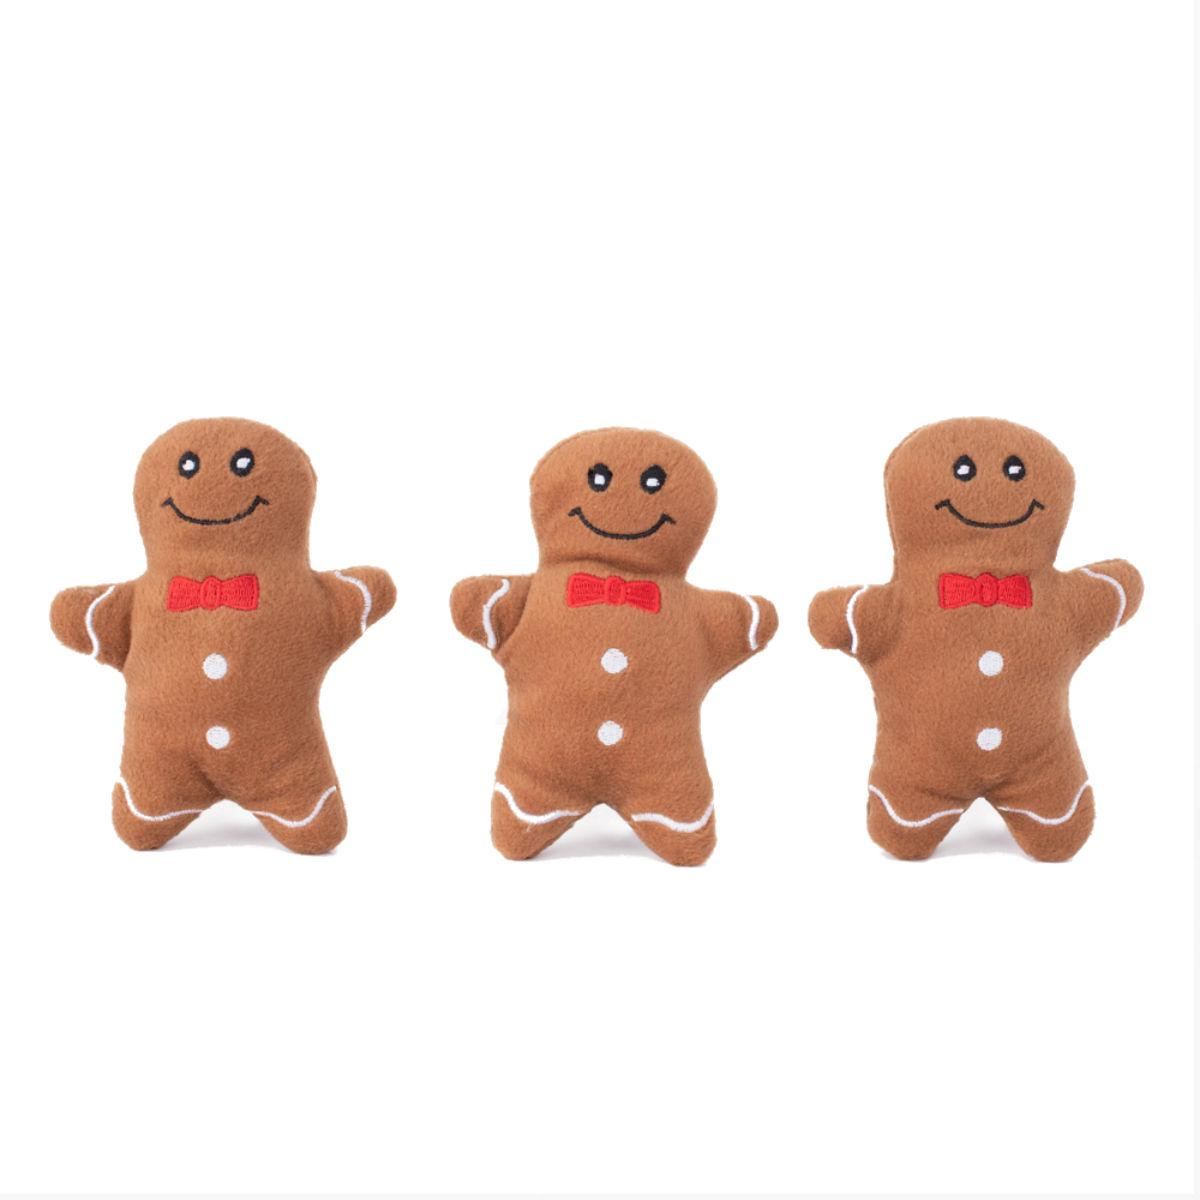 ZippyPaws Holiday Miniz Dog Toys - Gingerbread Men